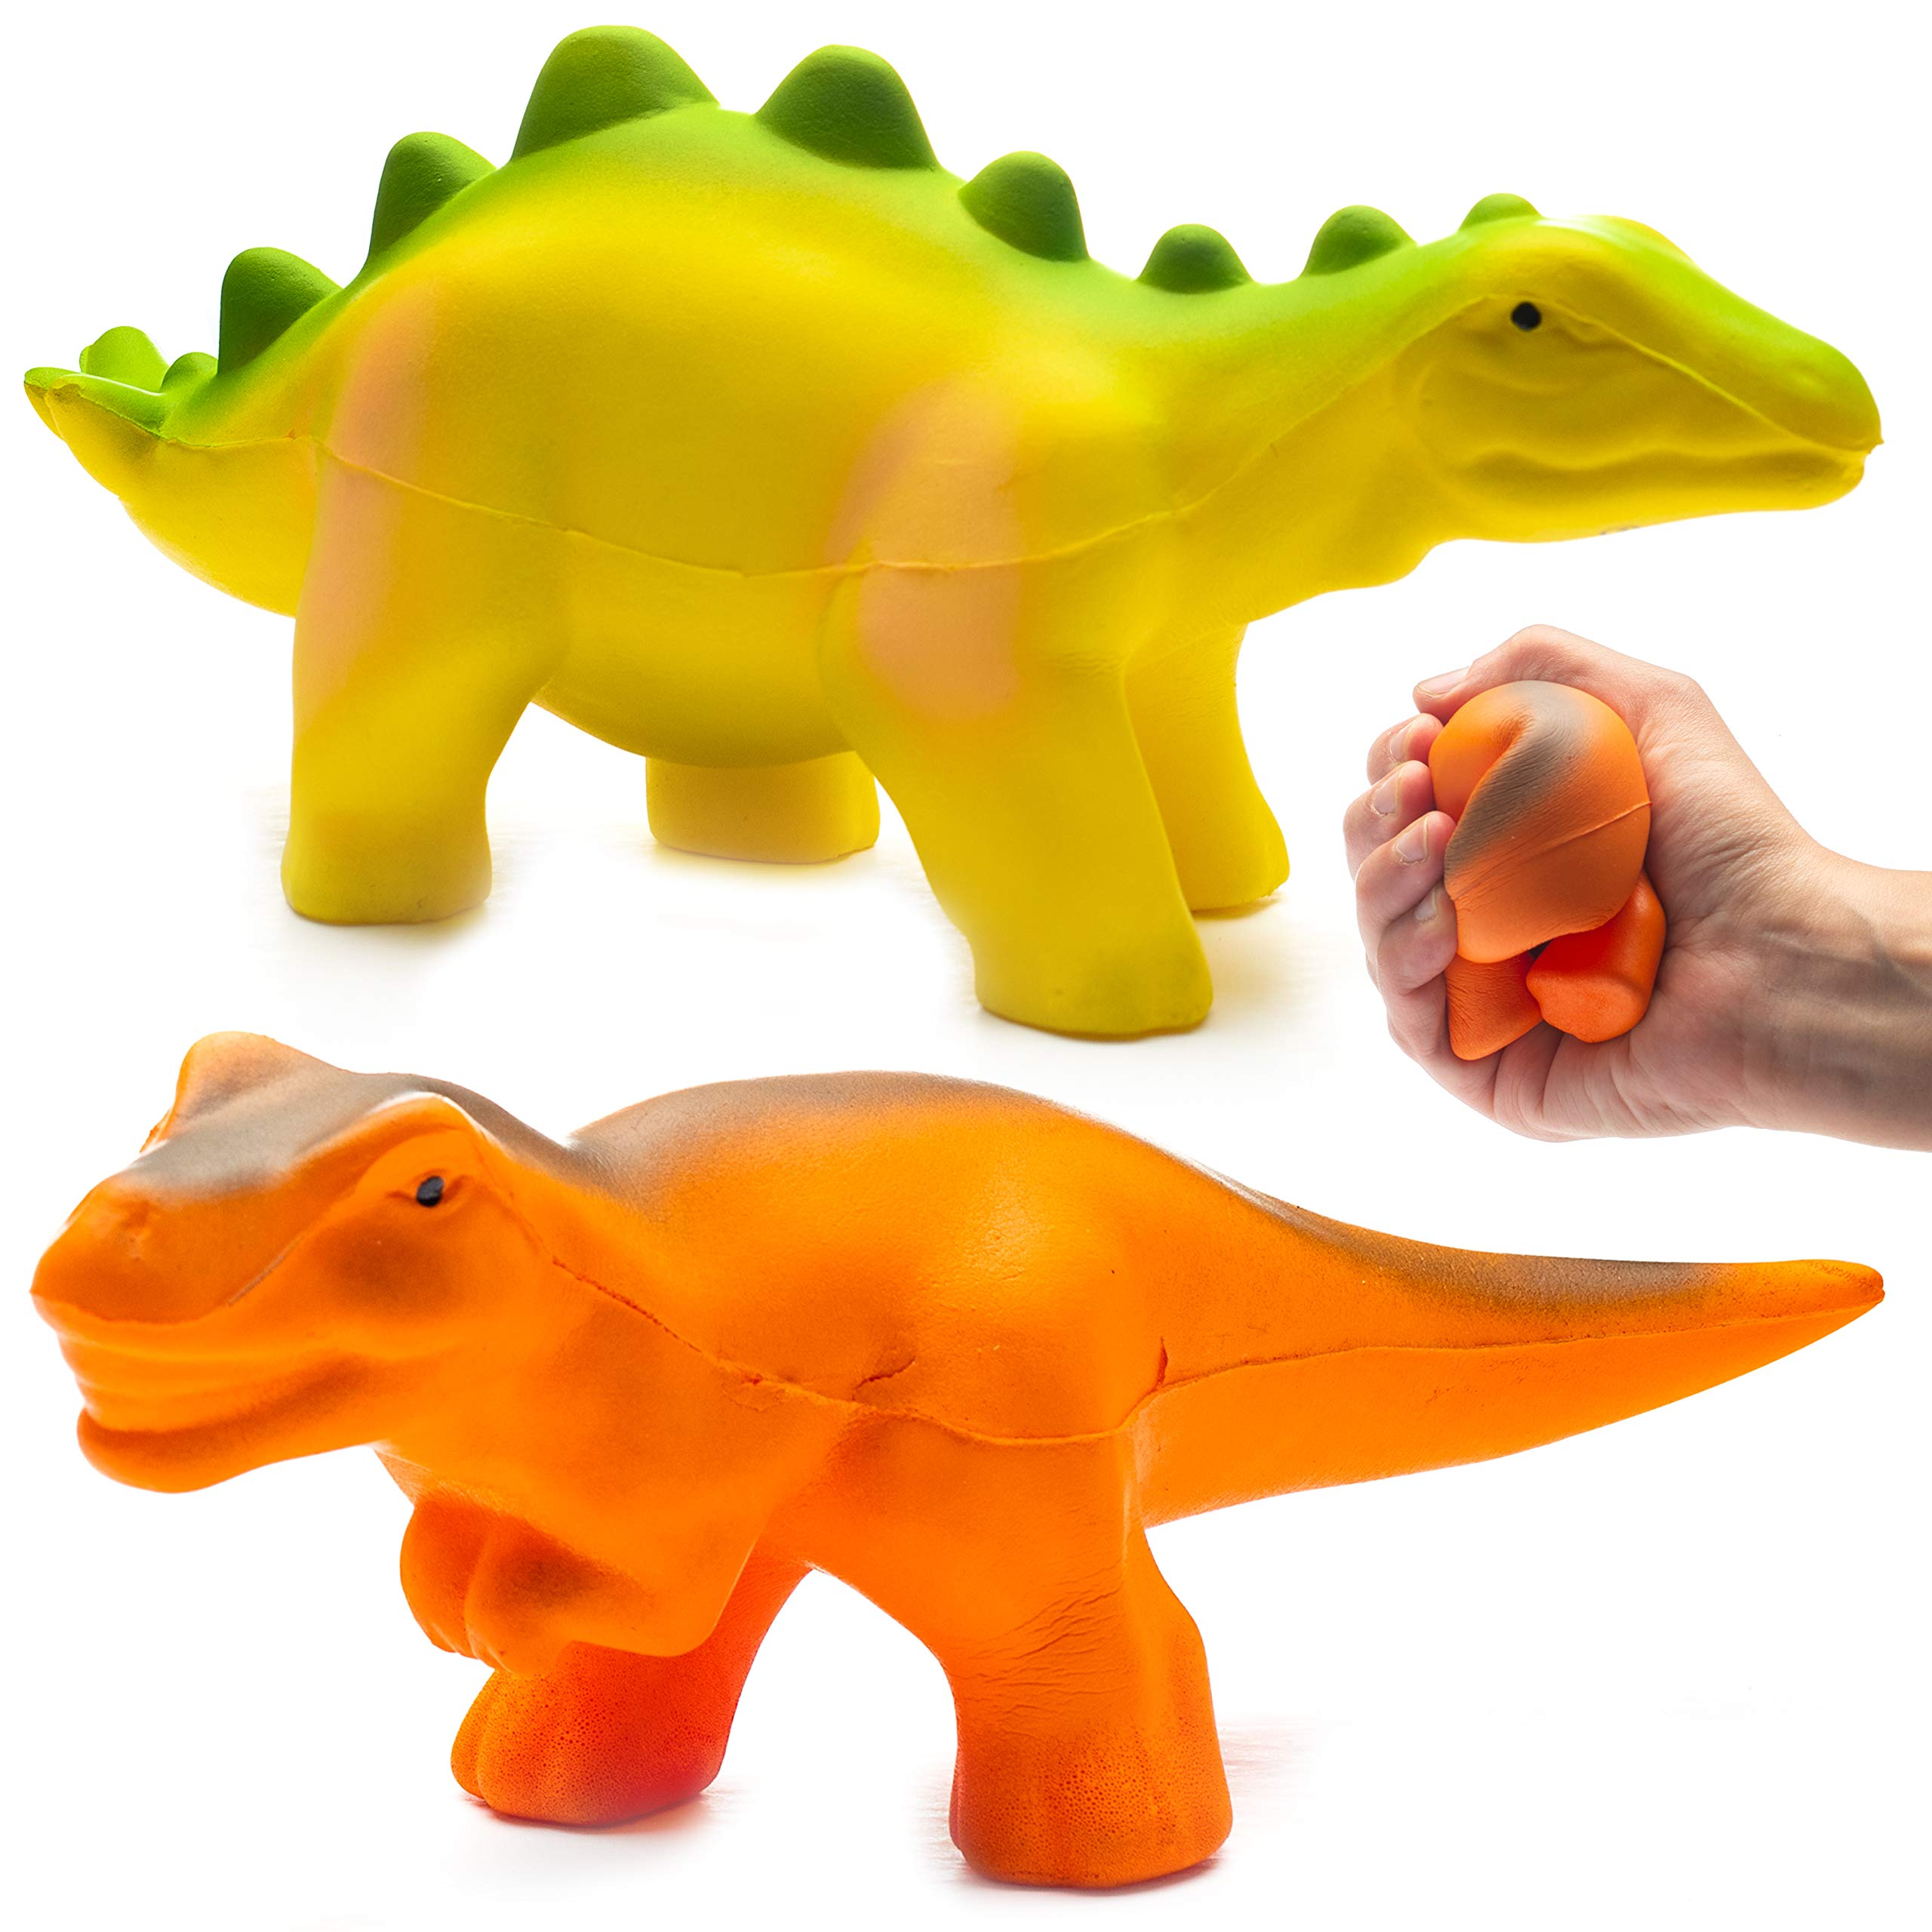 Prextex Jumbo Slow Rising Squishies Pack 0f 2 Dinosaur Squishy Toys T-Rex and Stegosaurus Stress Relief Toy Dinosaurs